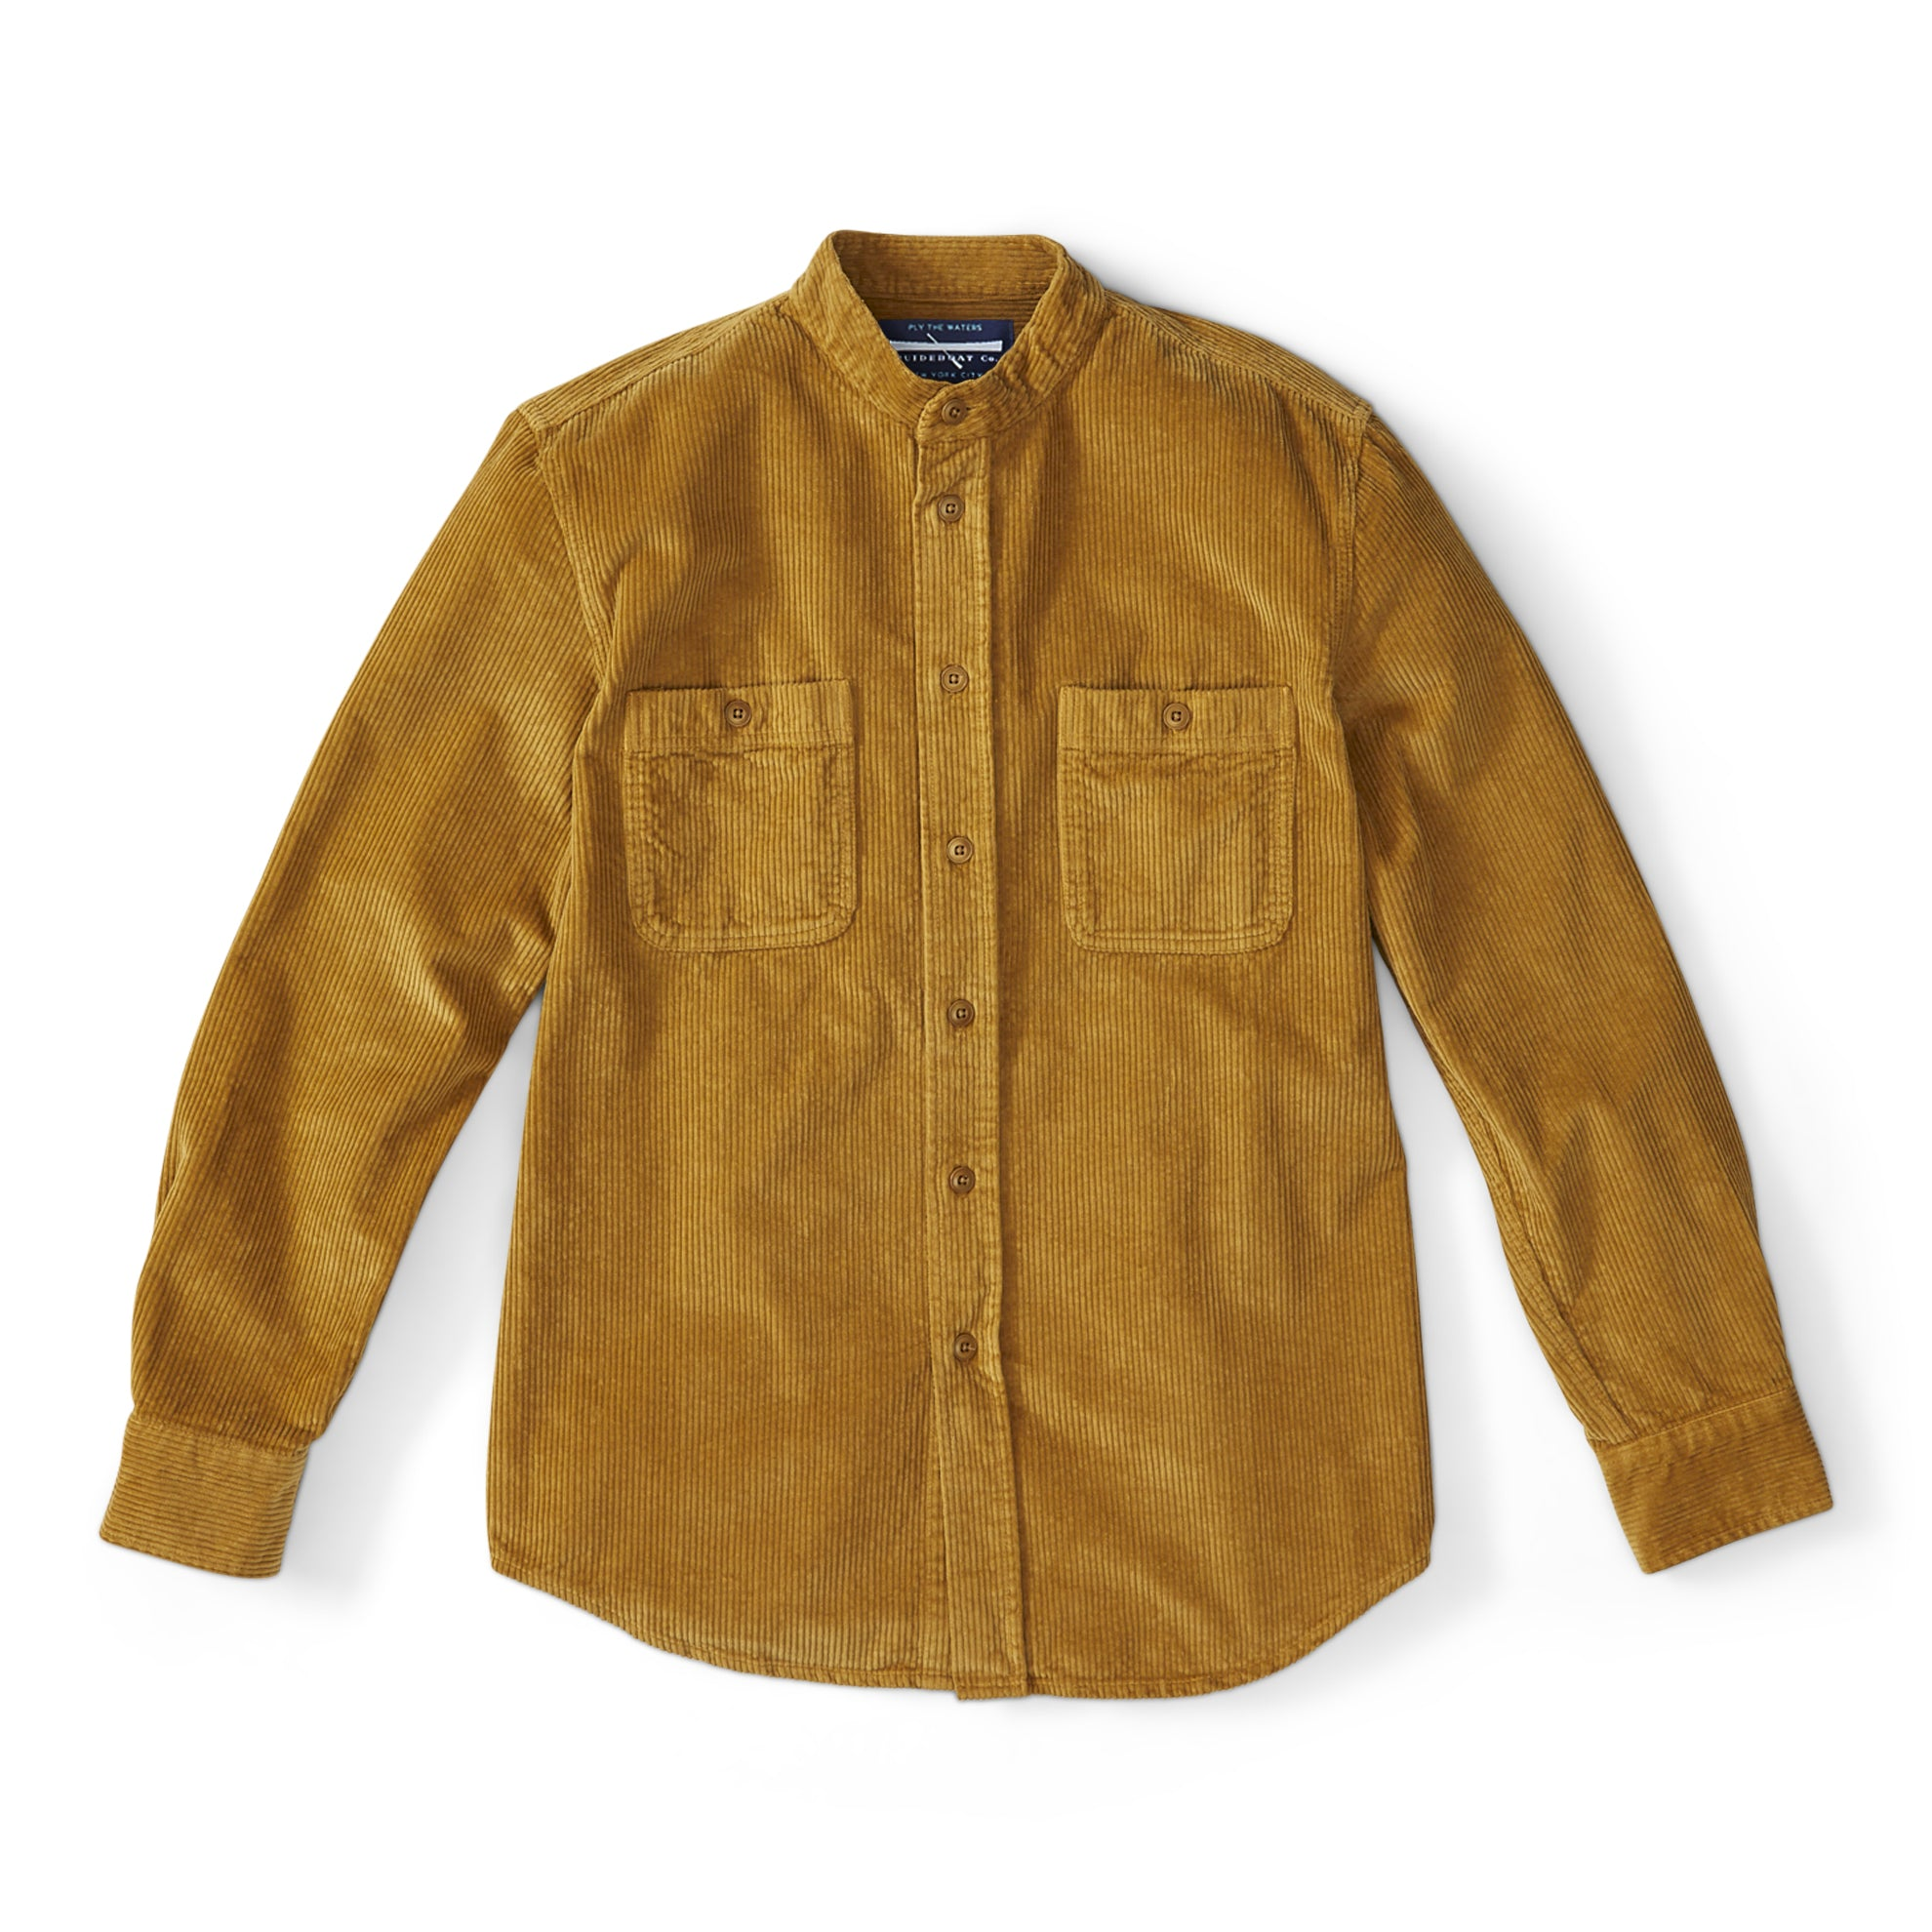 British Corduroy Shirt Jacket